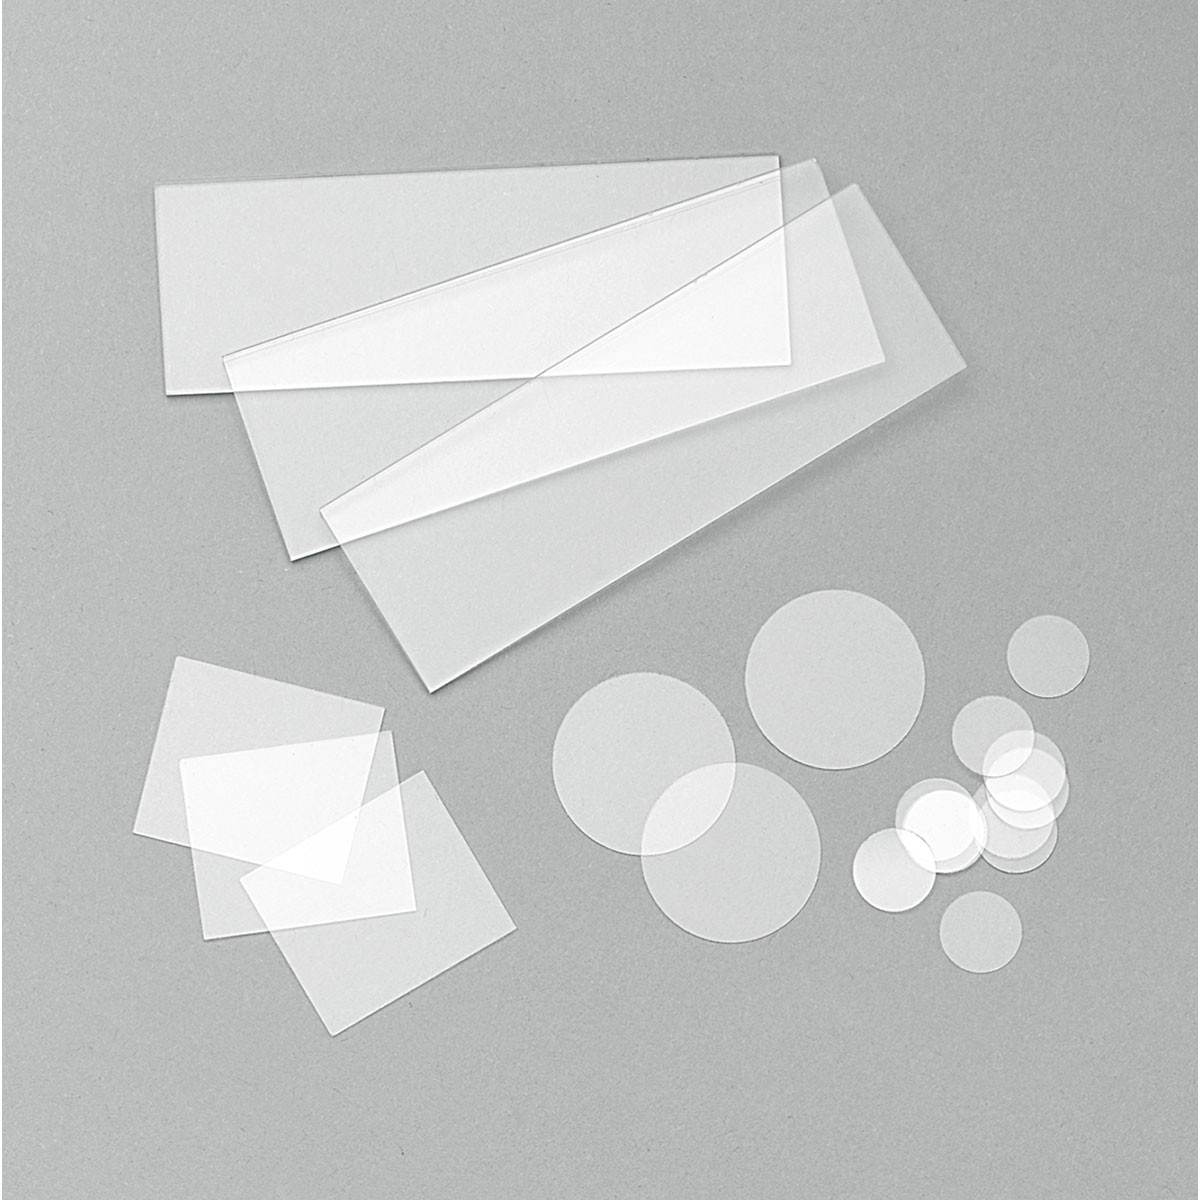 Cover Slips No. 1 18x18mm (100/ pack)